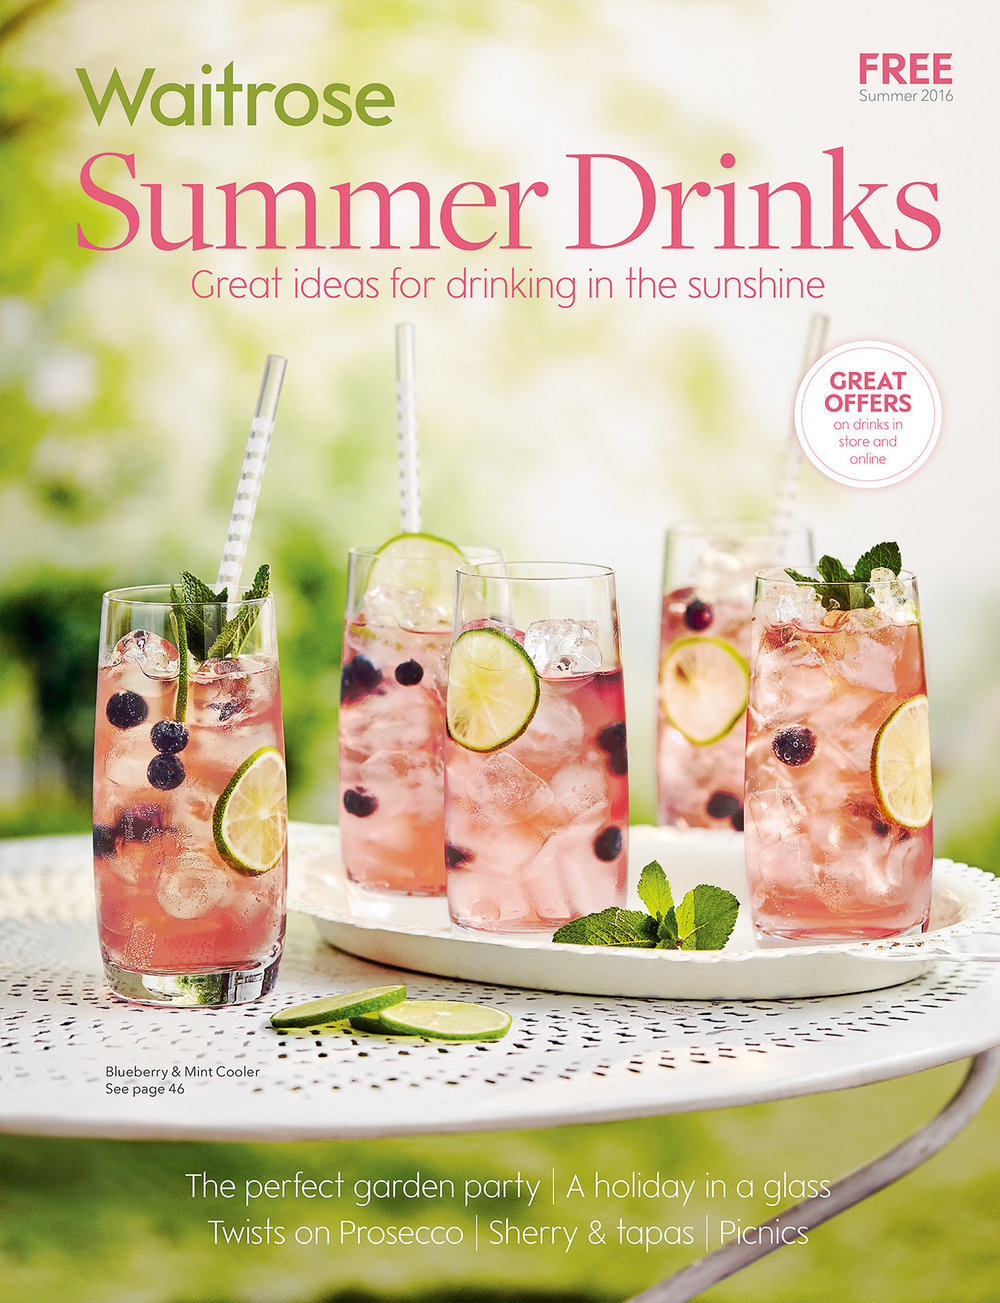 WaitroseSummerDrinks.jpg